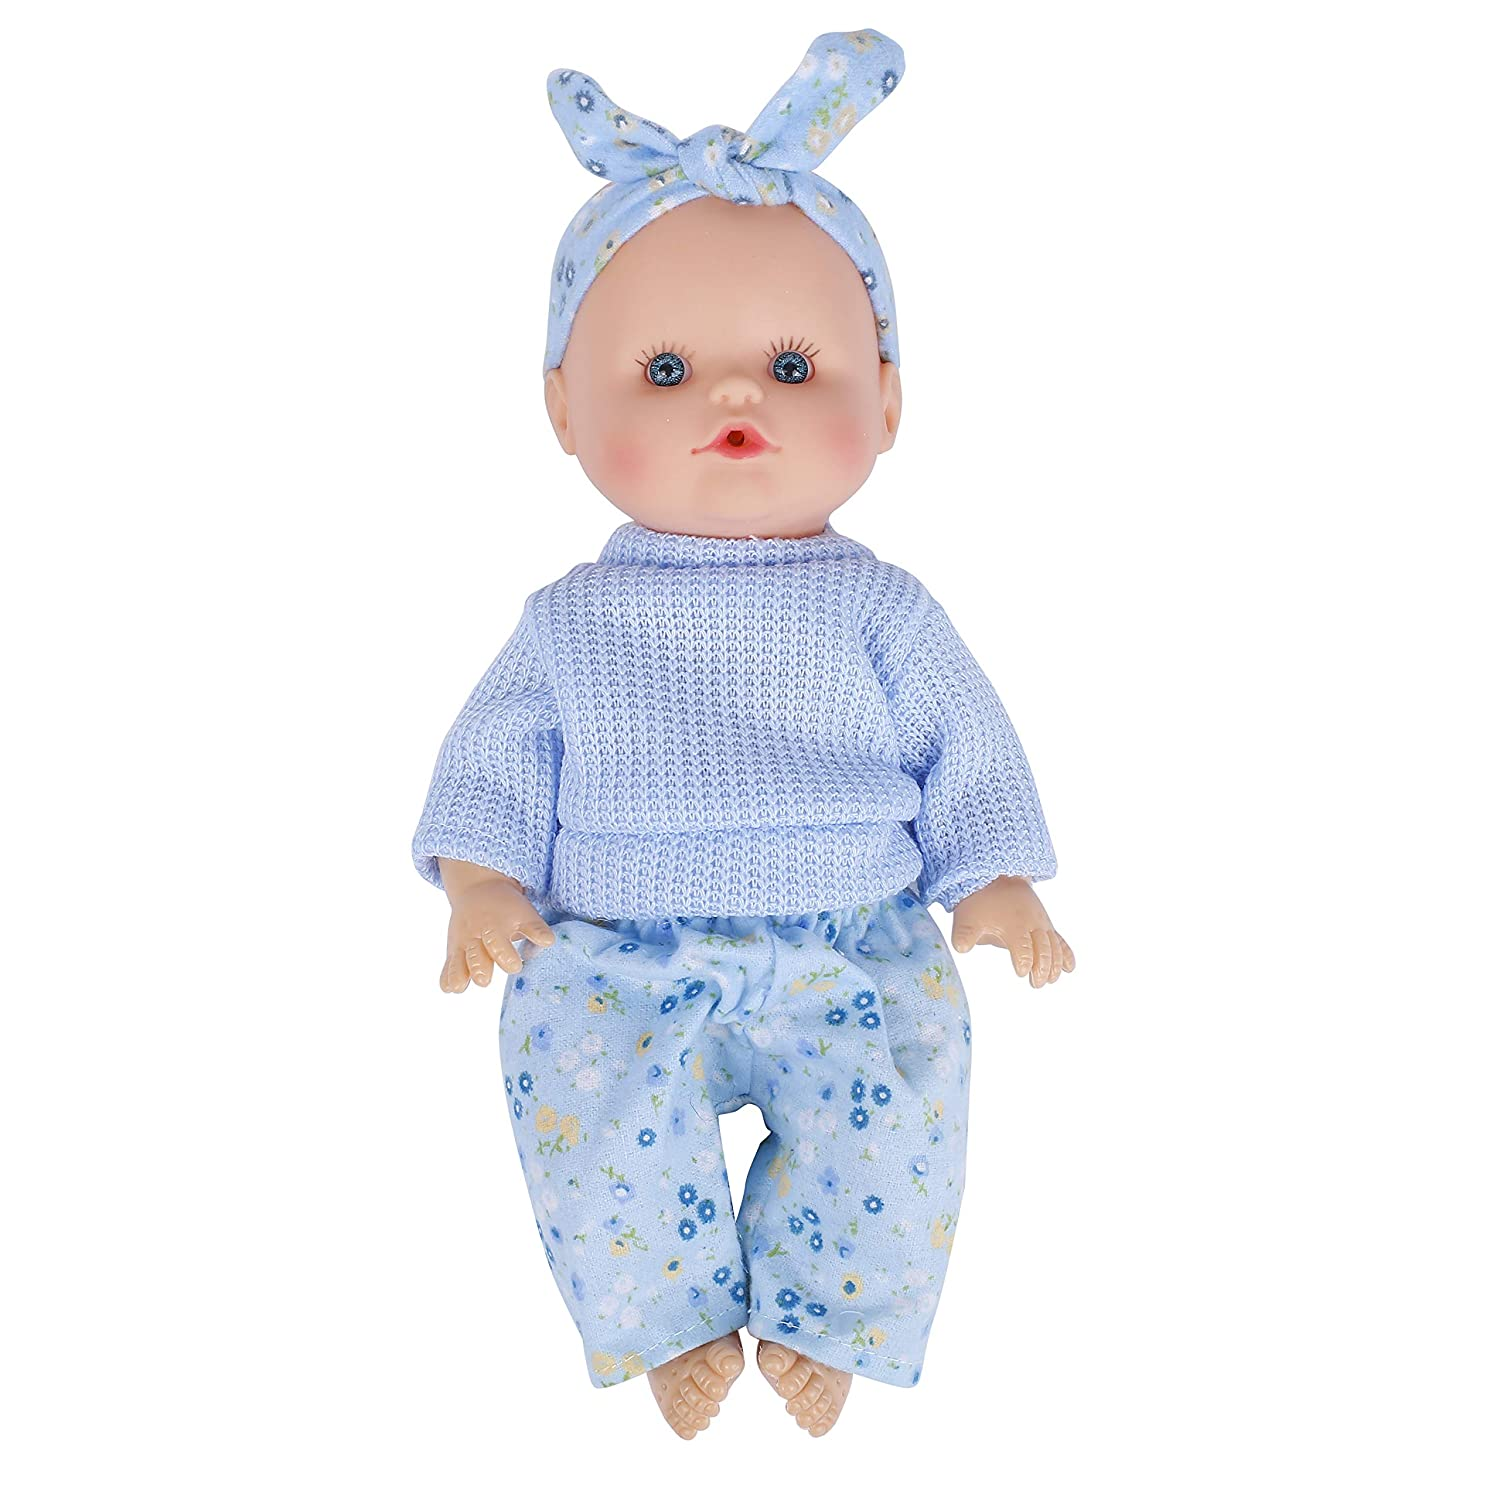 LedyToys 12-Inch Baby Doll Set with Accessories Built-in Vocal Function,Realistic Baby Doll Gift Set for 3 Children Girls /& Boys